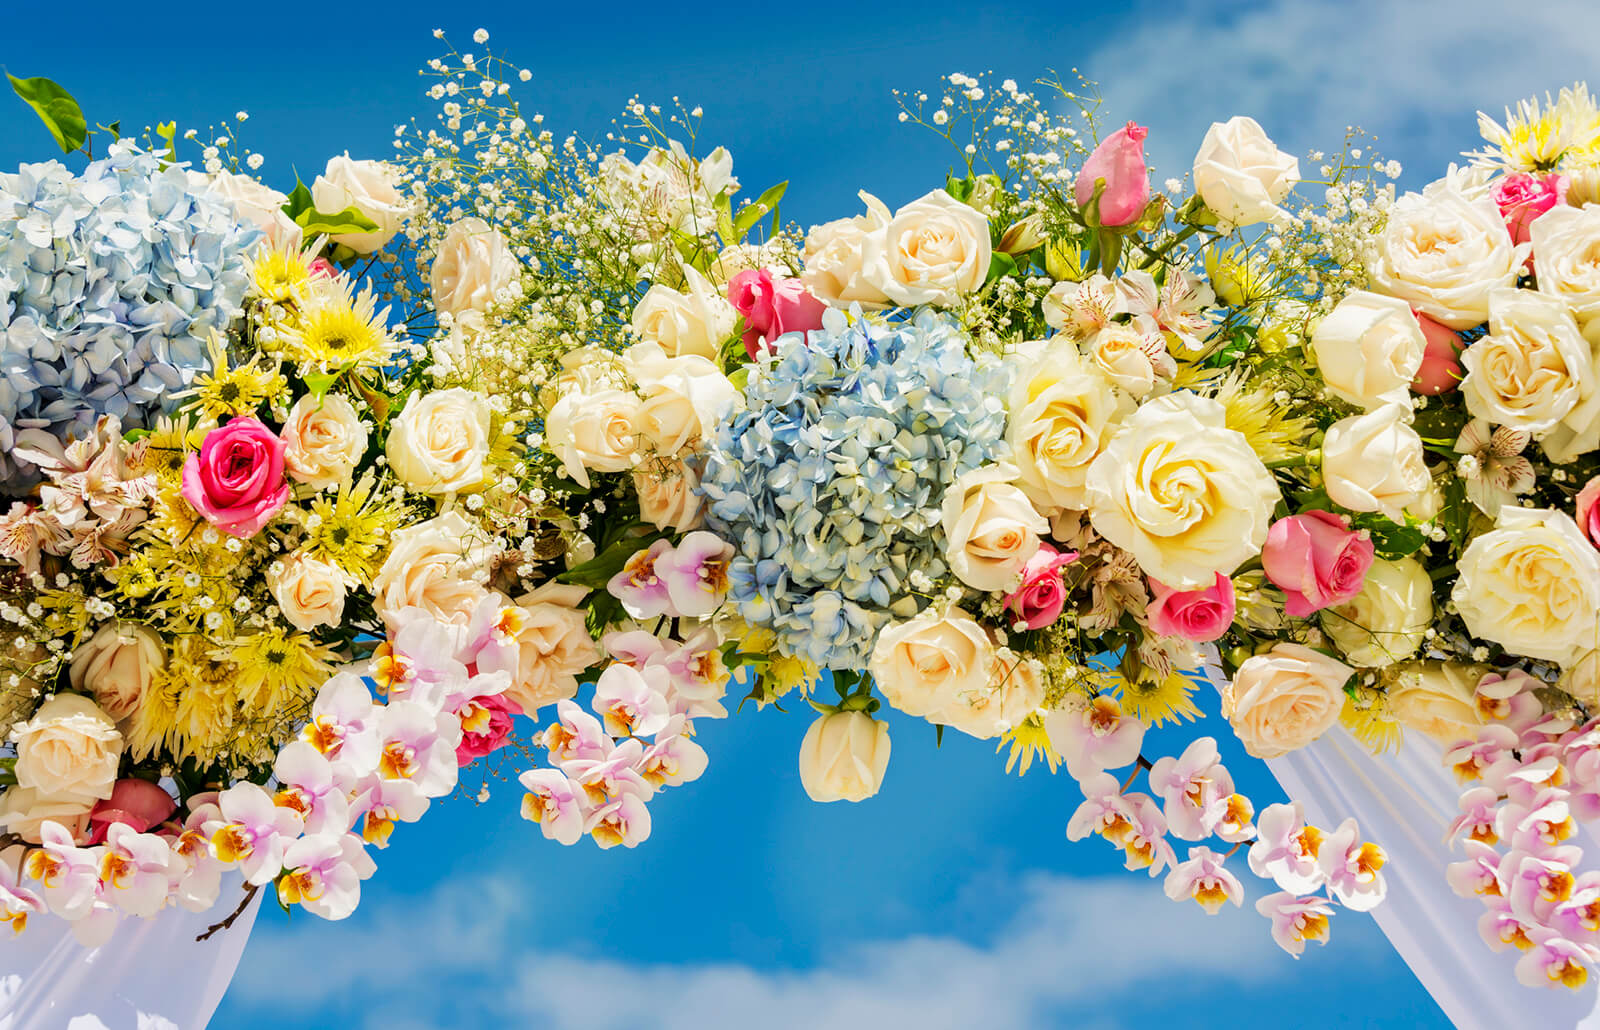 In What Ways Flowers Can Be The Best Gift For Your Loved Ones?